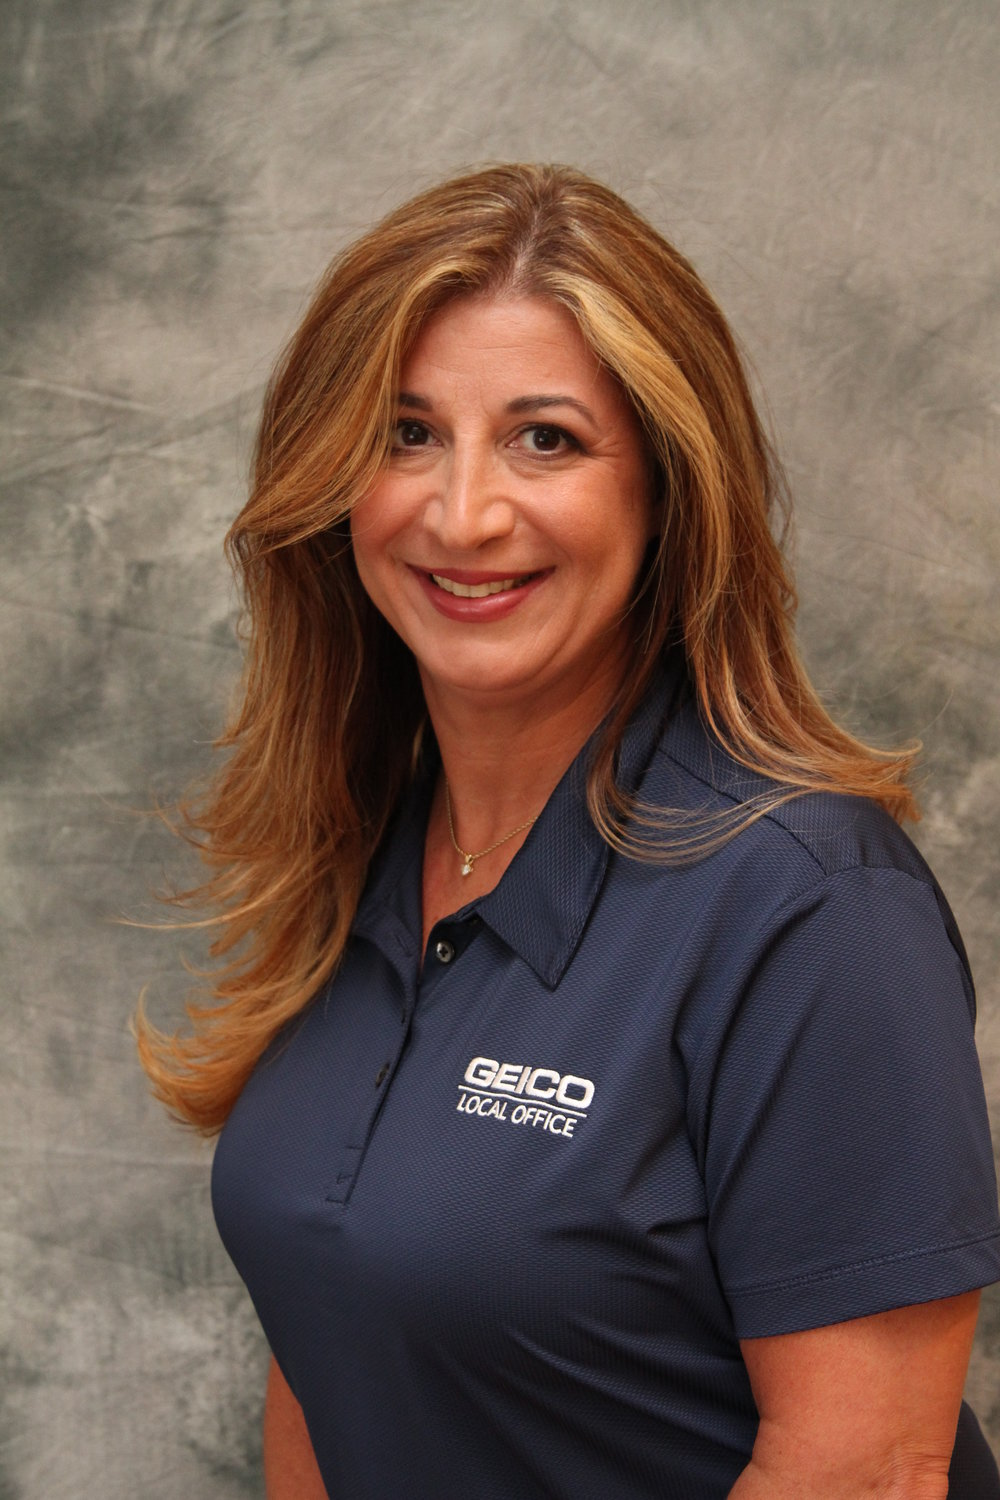 Melissa Matassa is the owner of the Lynbrook business and also works as a Geico agent.